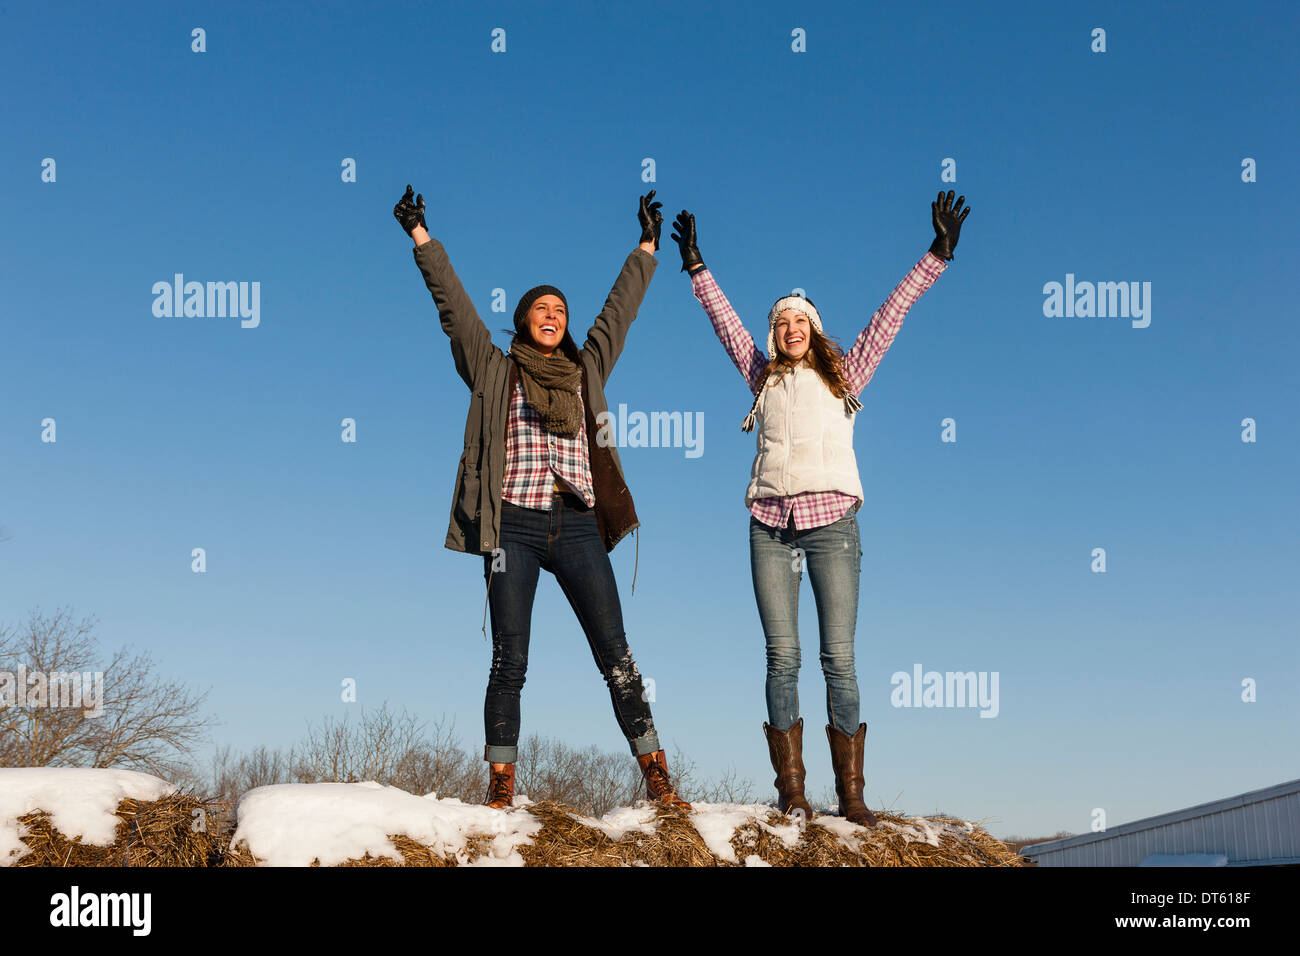 Two young women with arms raised on winter hilltop - Stock Image